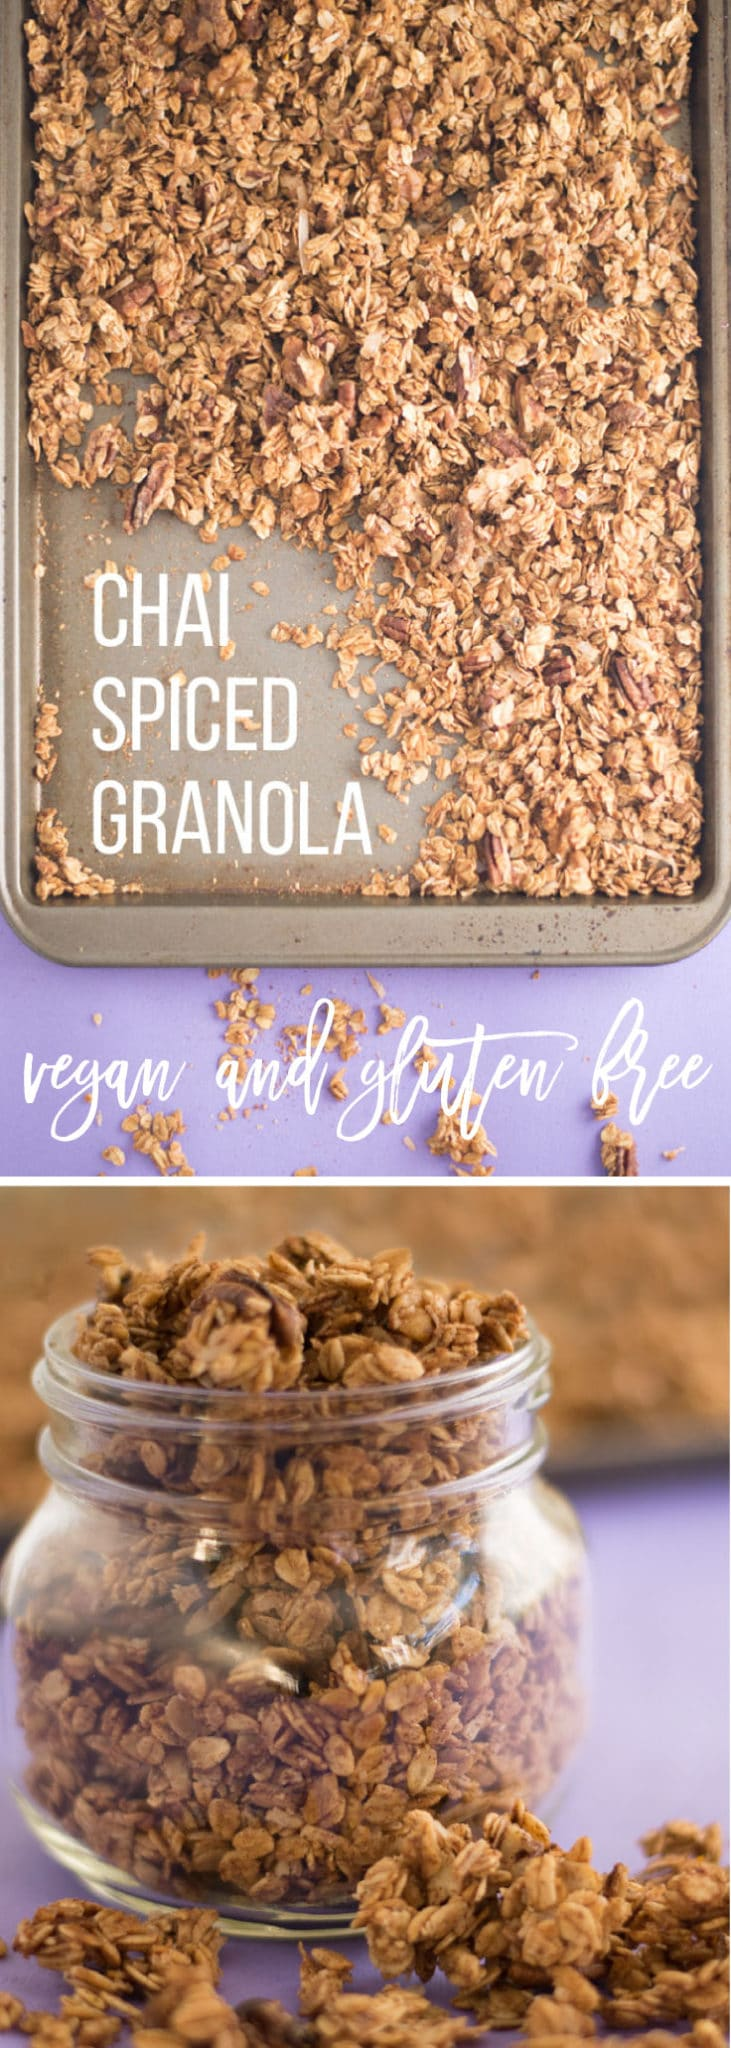 Super Chunky Chai Spice Granola -- This simple vegan granola recipe only takes 7 ingredients and has perfect chunks! Such a yummy topping for yogurt or snacking on the go. #veganbreakfast #vegansnacks #cleaneating #healthy | mindfulavocado